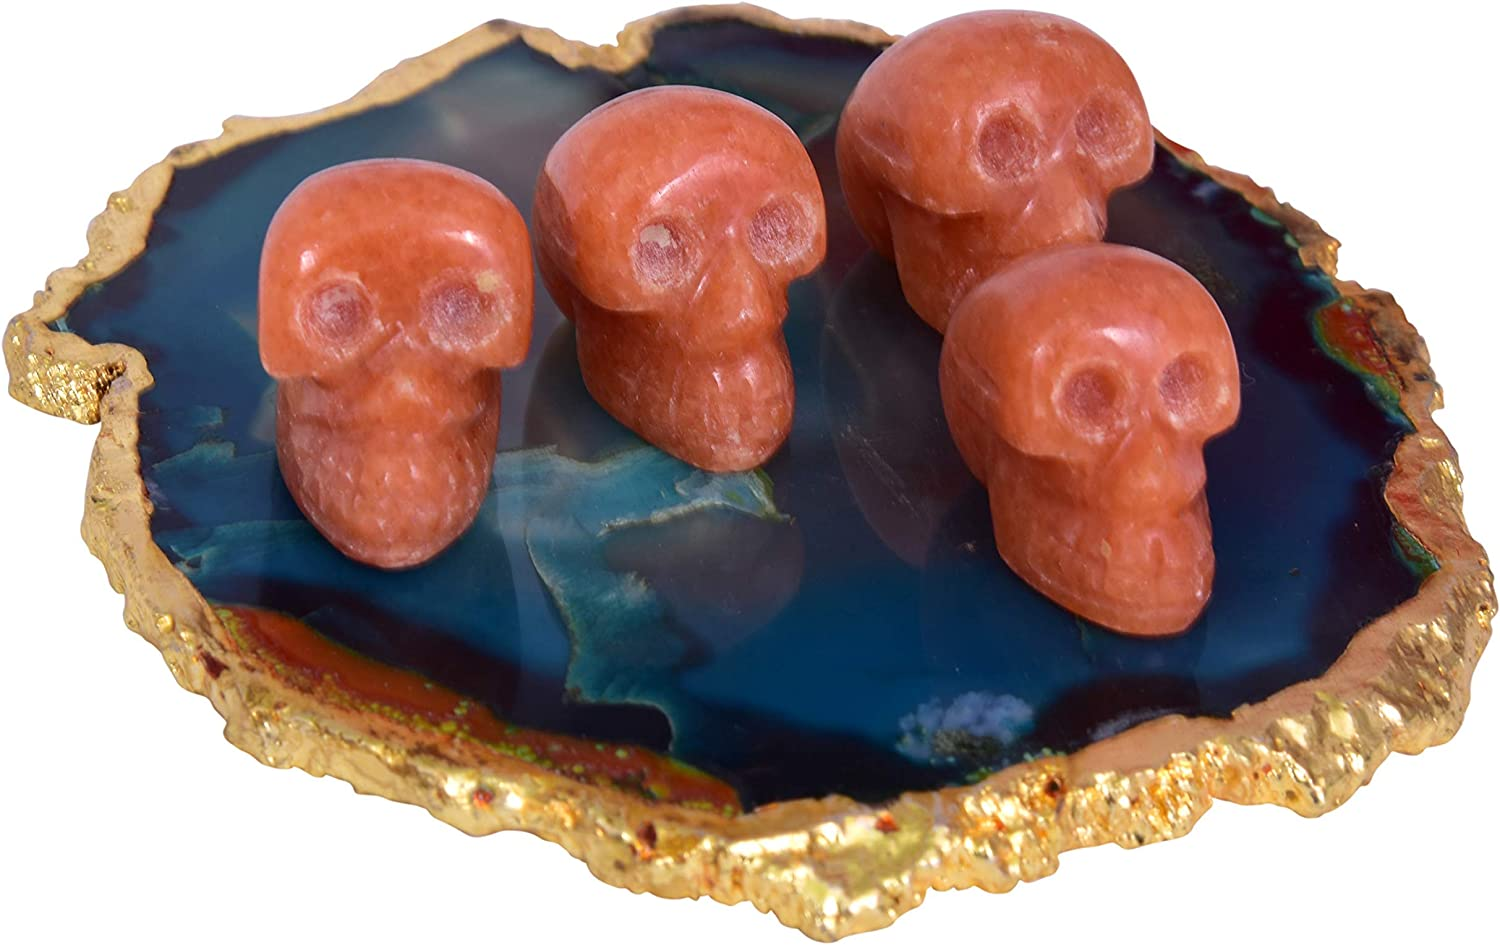 Carnelian Sales Stones Carved Skull Statue Healing Crystal Figu Pocket Free Shipping New